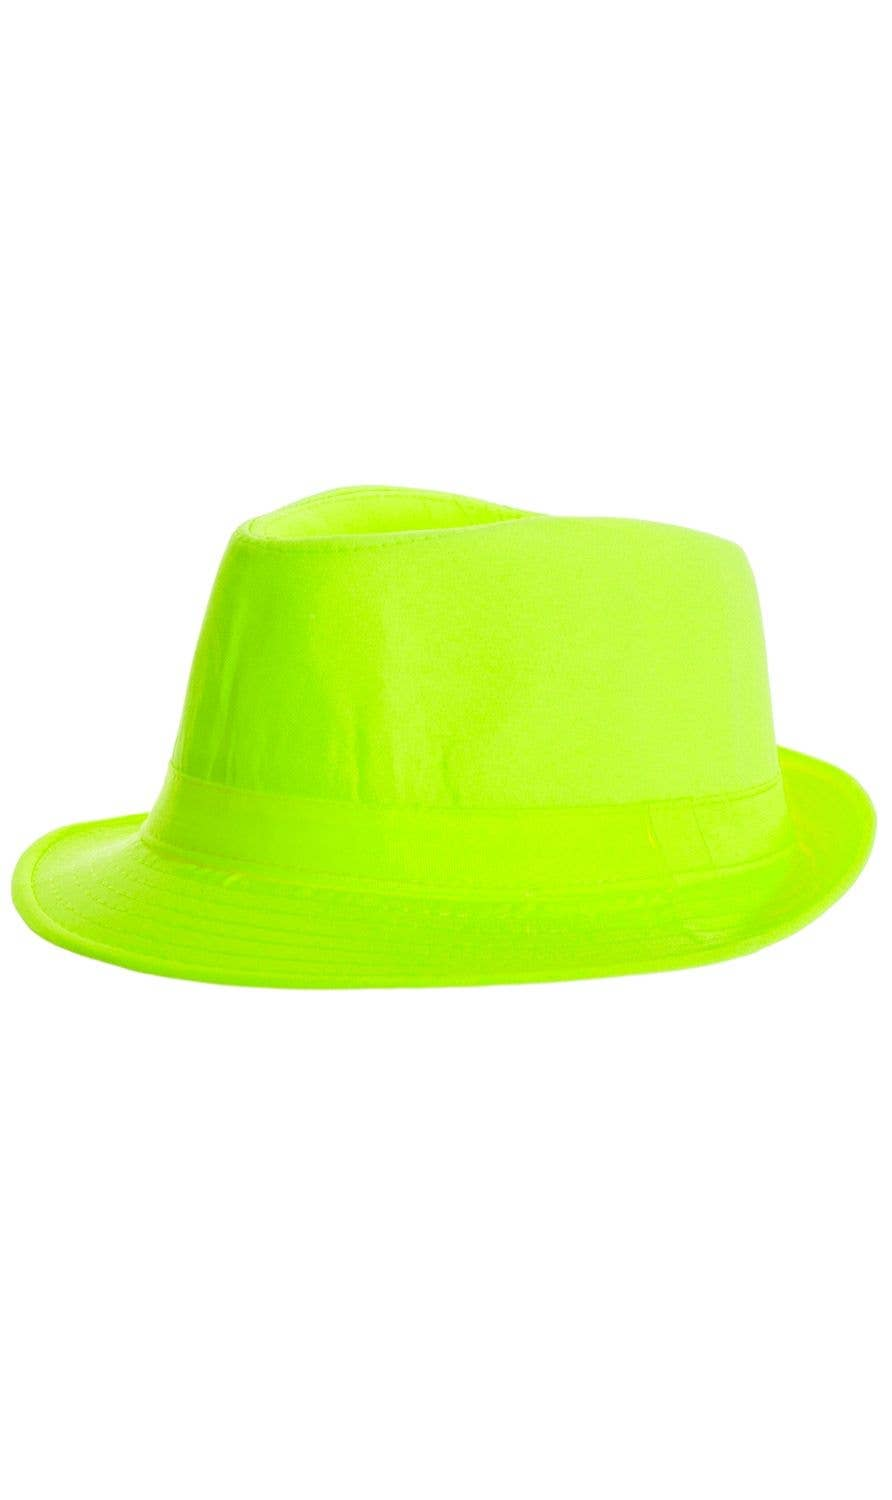 Neon Fluro Green Yellow 1920 s Gangster Costume Fedora Hat Accessory d14350a96007